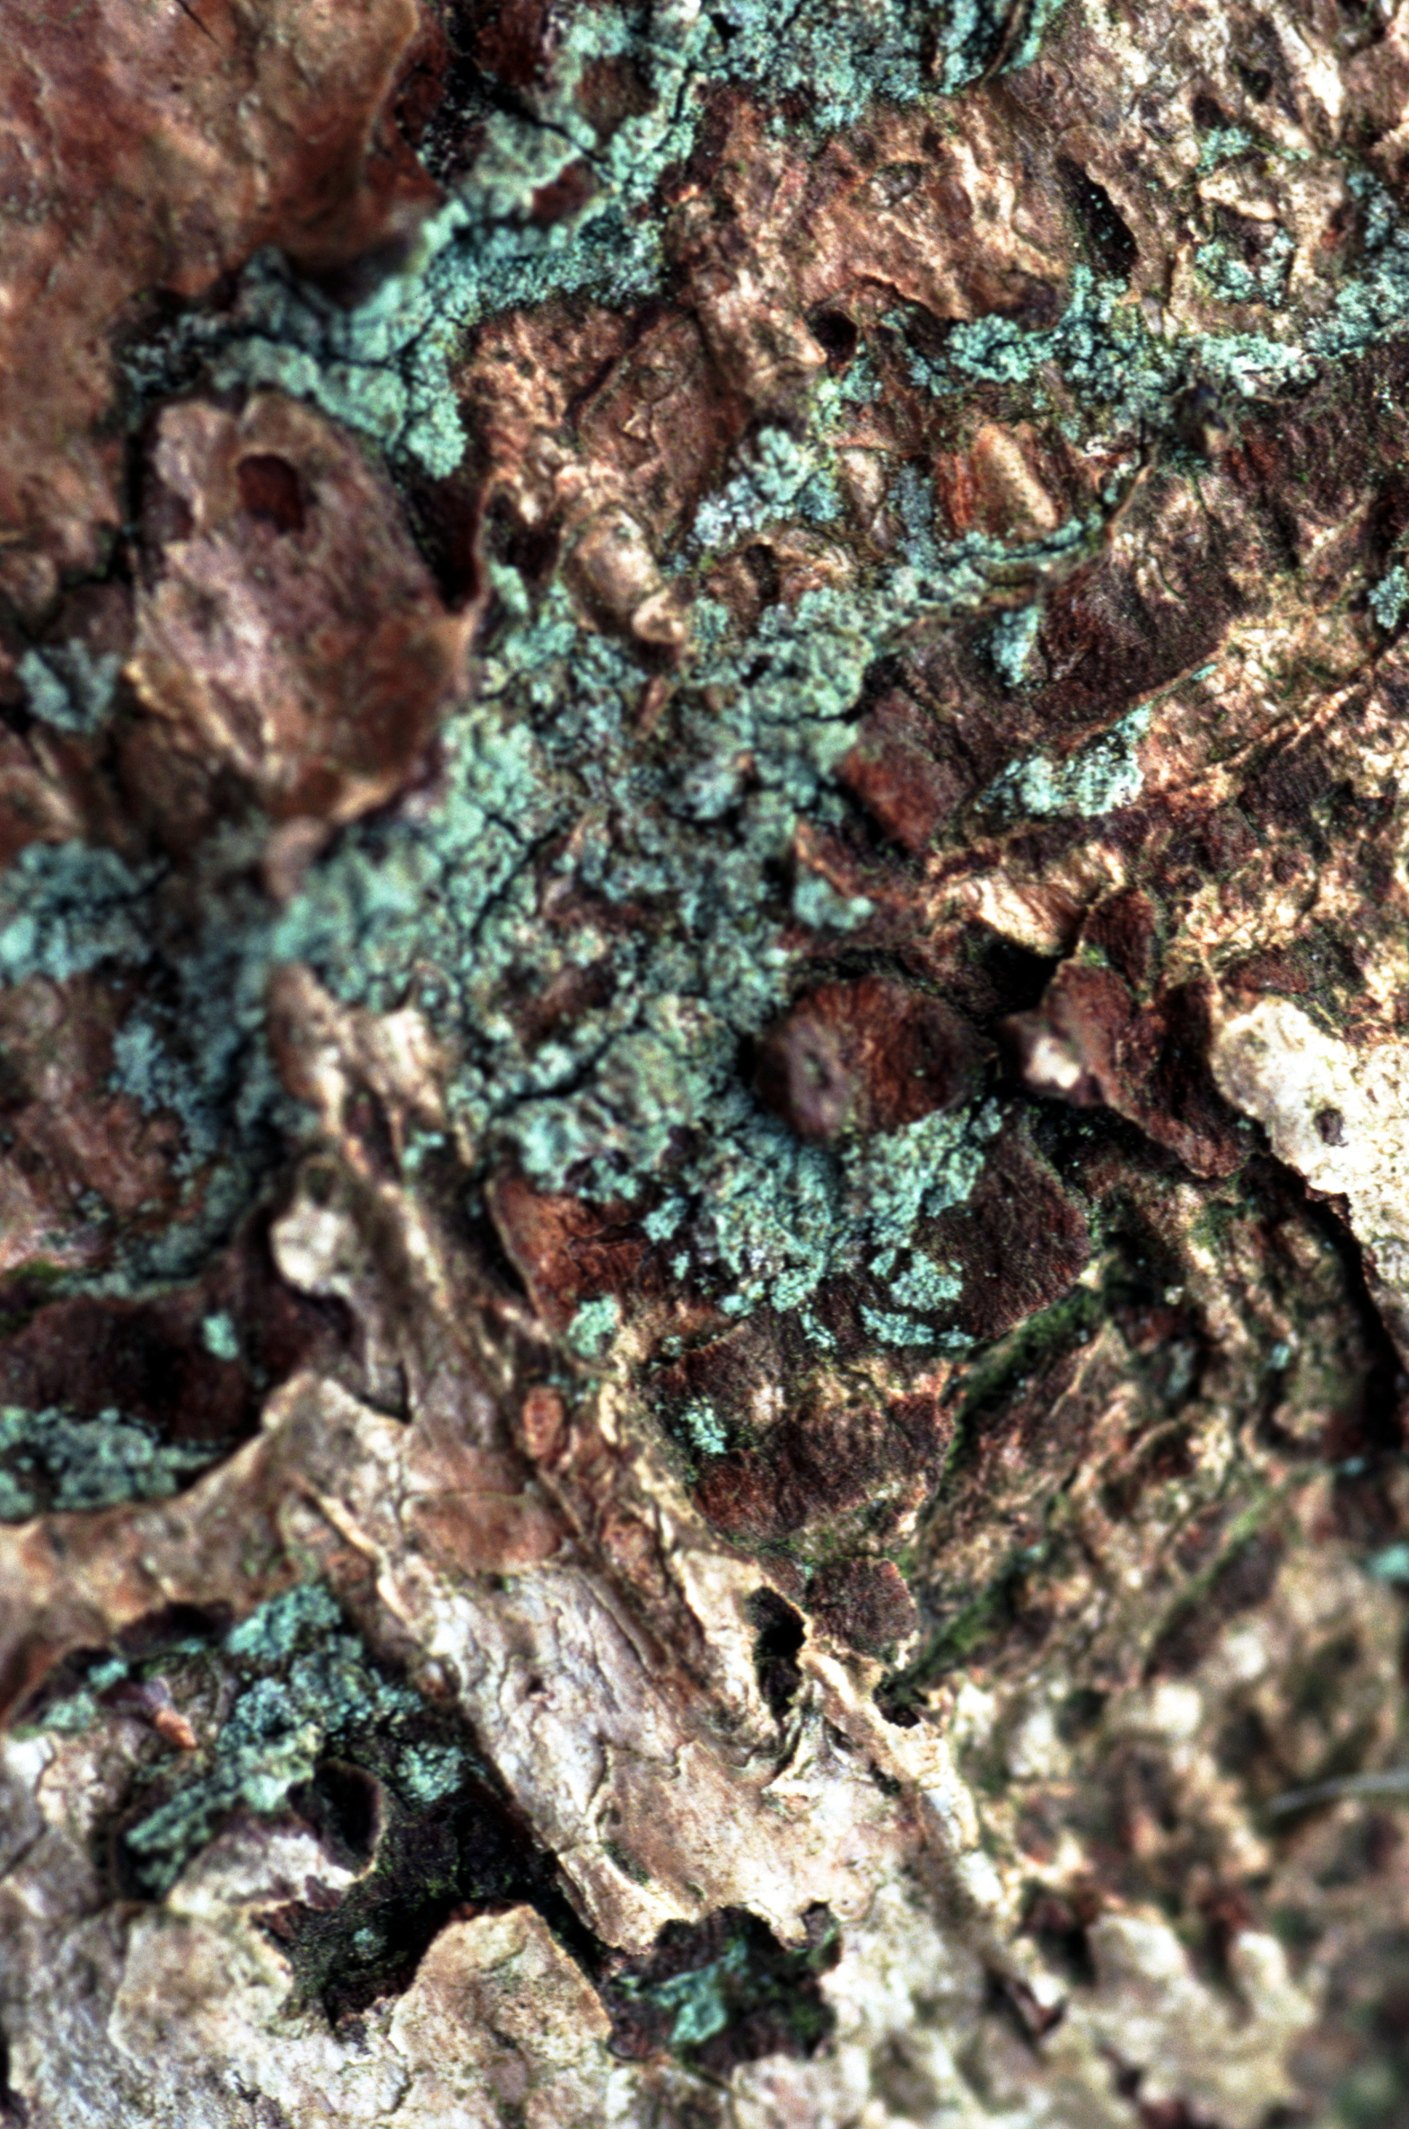 How To Preserve Lichen And Moss On A Tree Branch